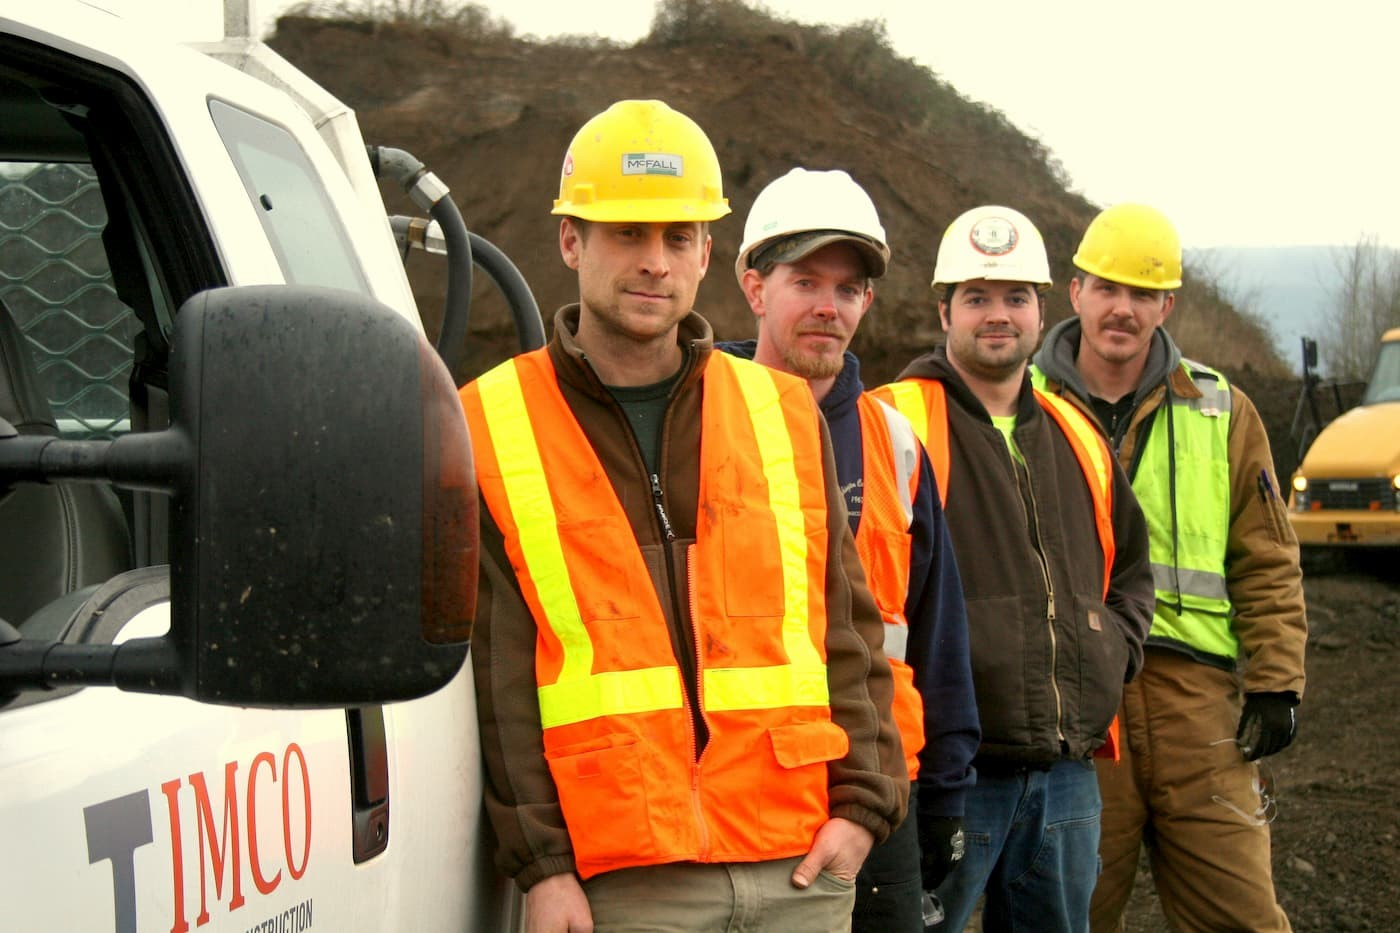 CITC apprentices gaining experience by completing an IMCO project in Northwest Washington.